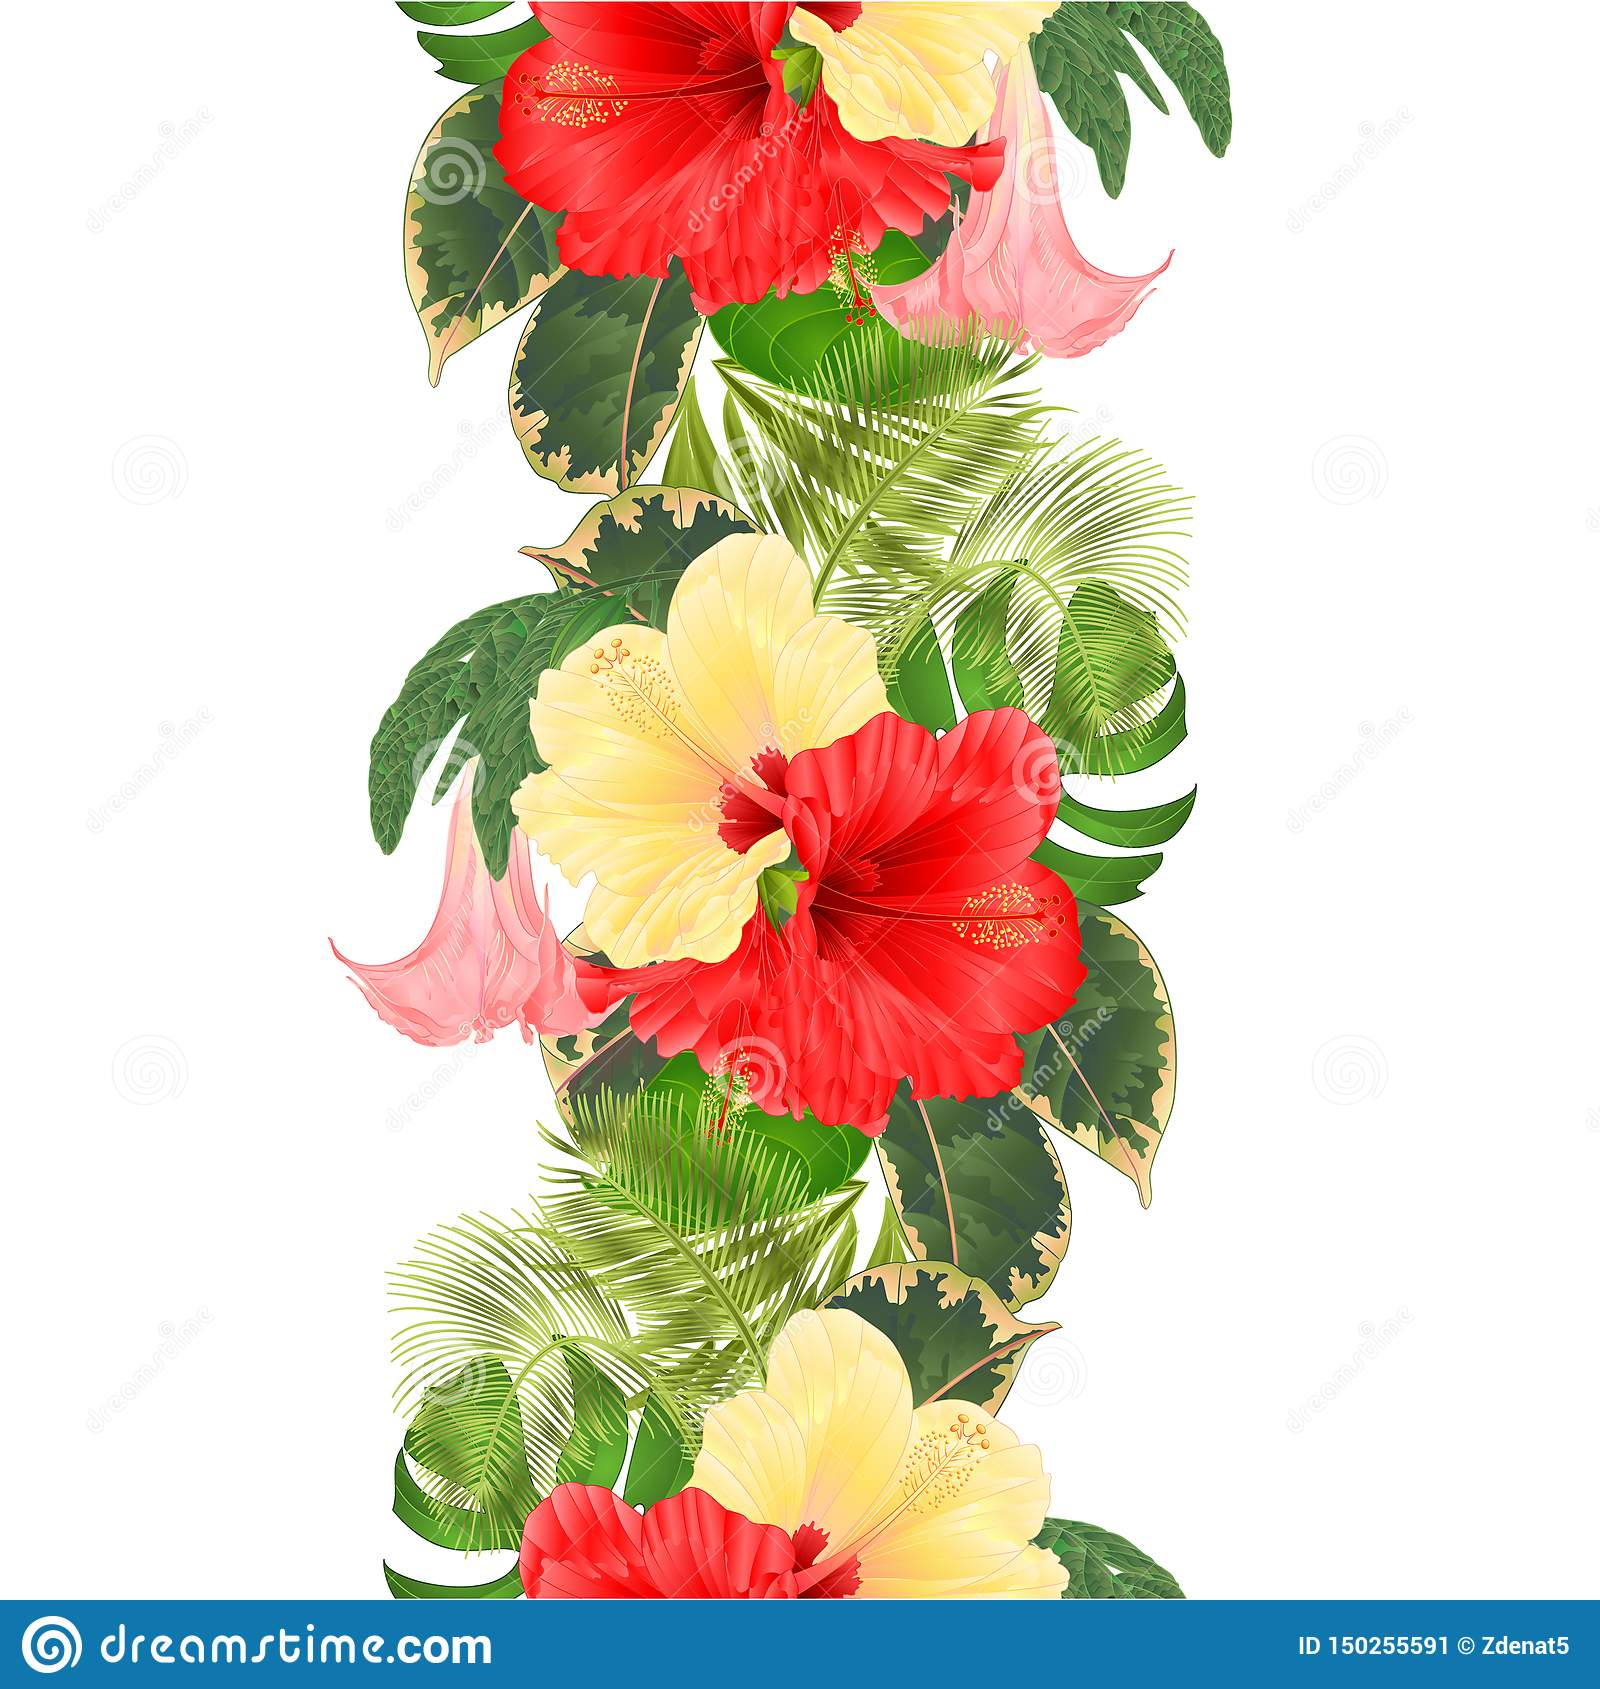 Seamless Texture Tropical Flowers Floral Arrangement With Red And